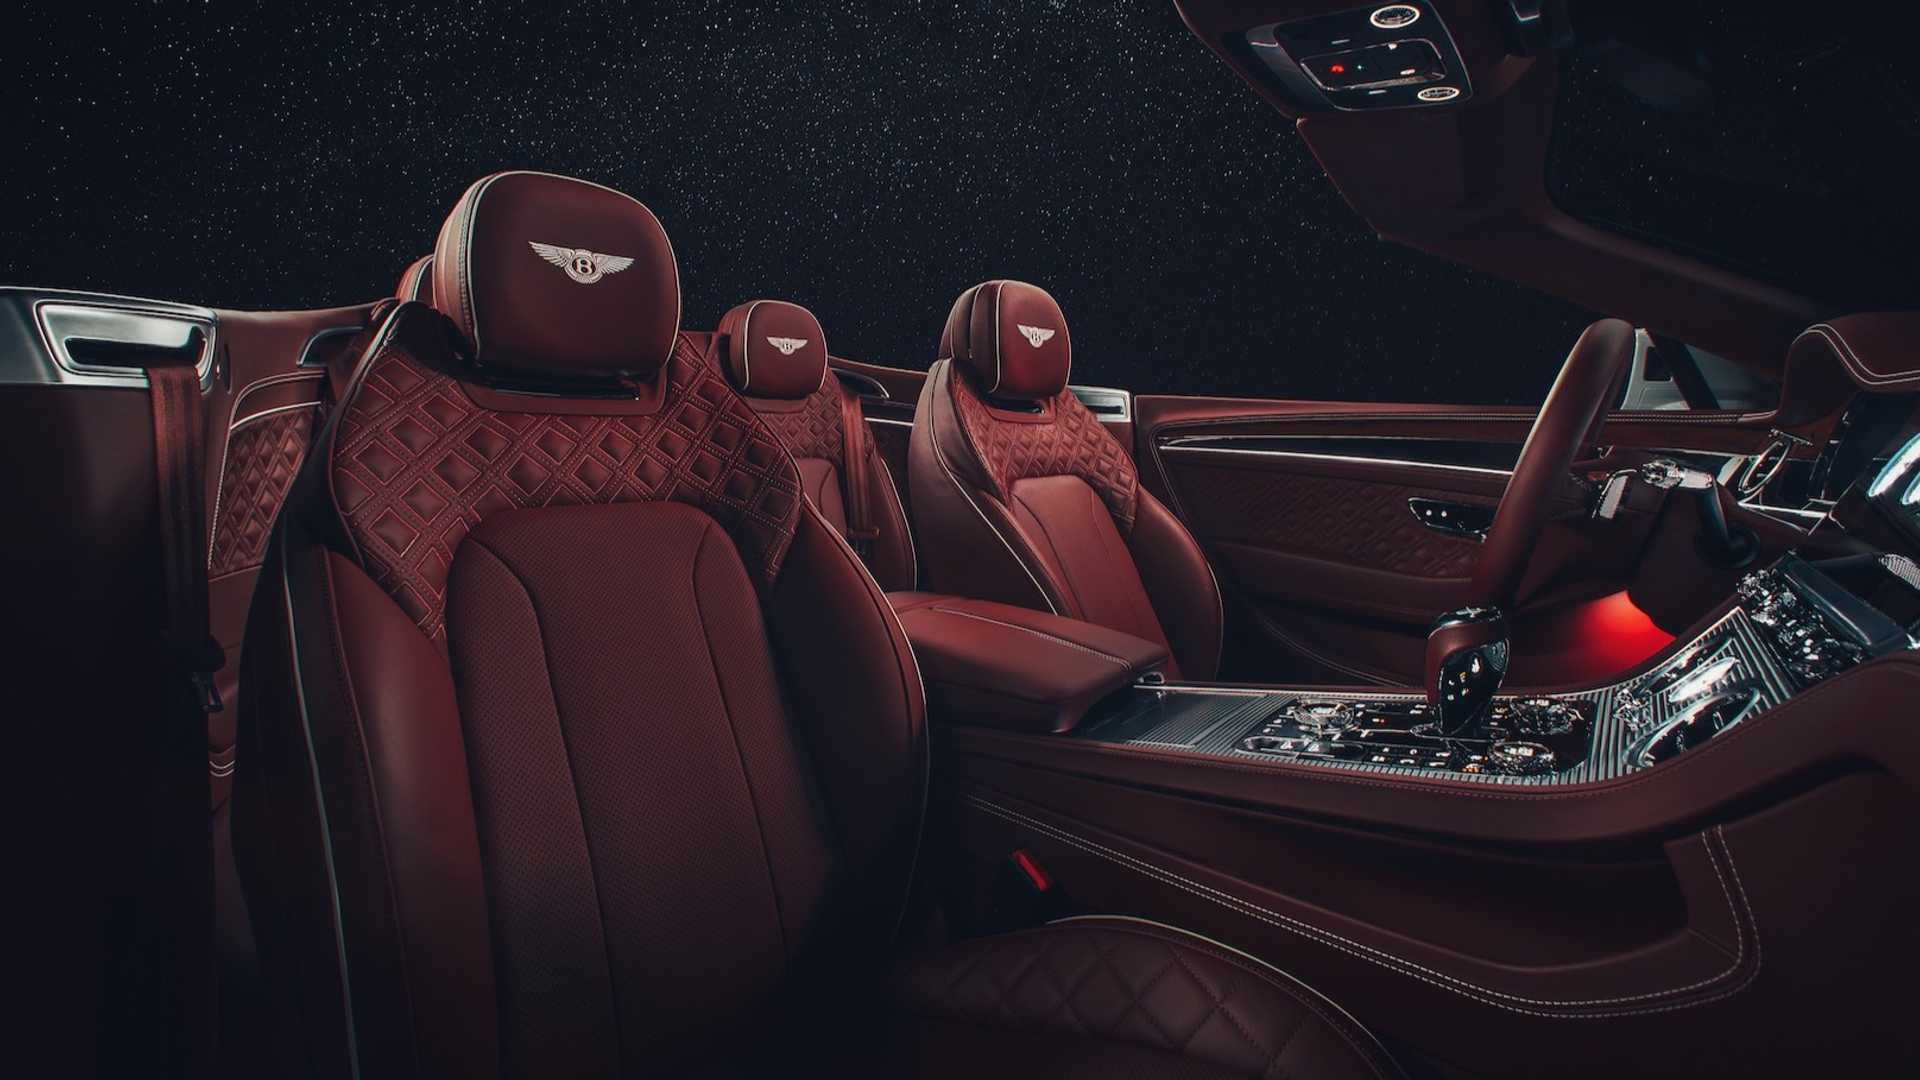 2019-bentley-continental-gt-convertible-unveiled-207-mph-luxury-droptop (26)